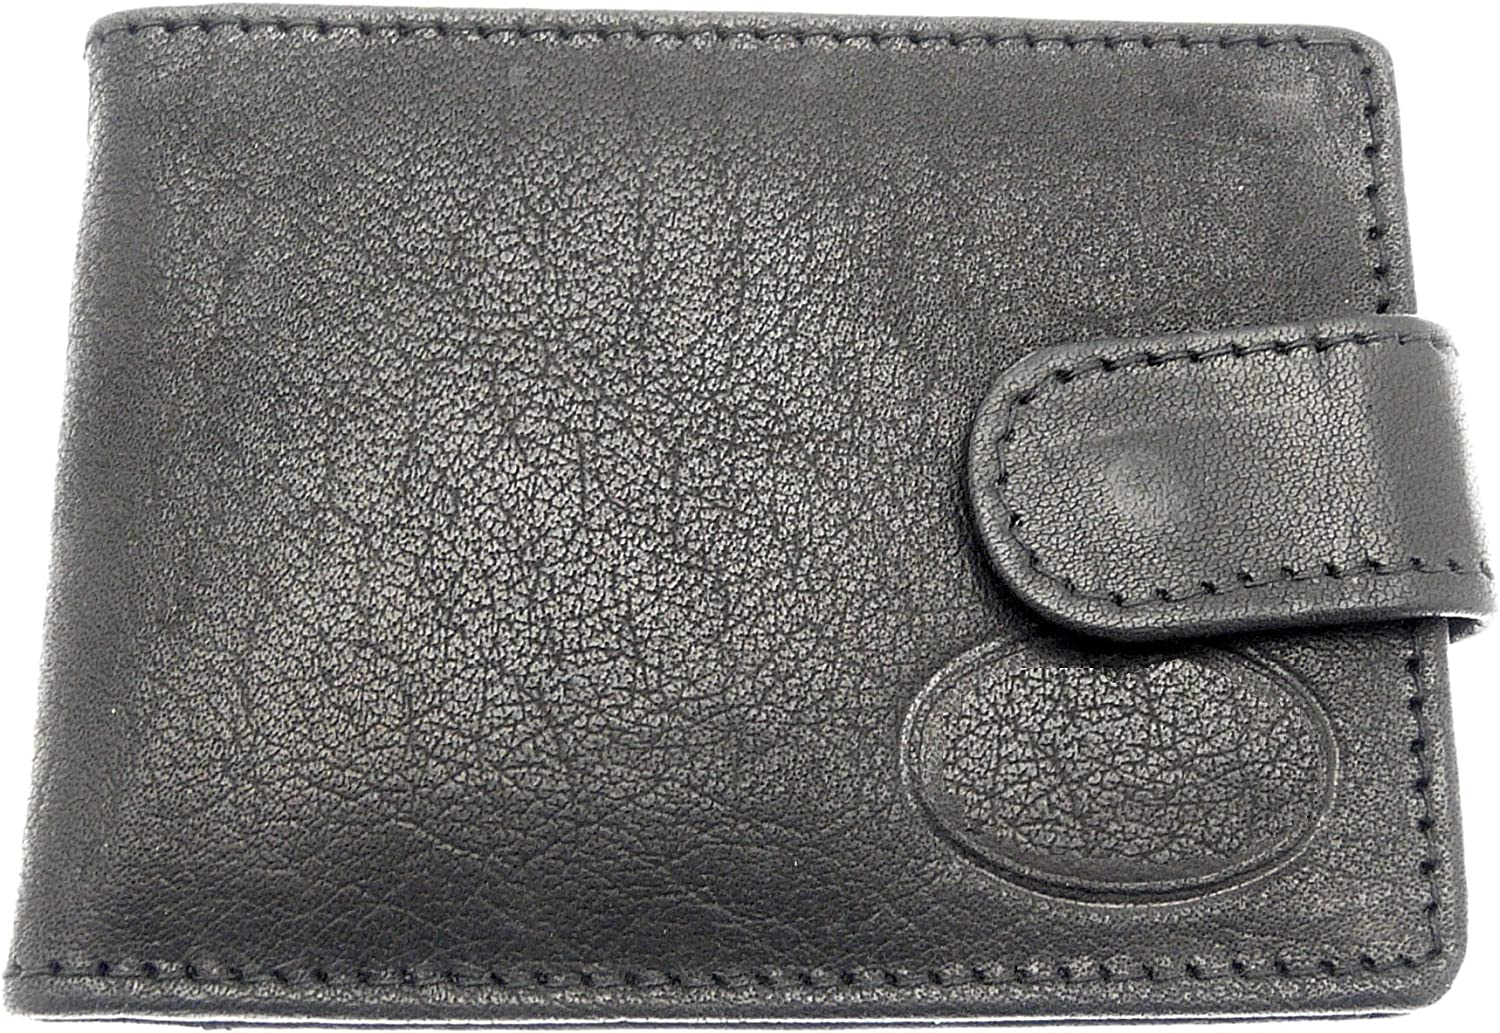 BLACK LEATHER Has 12 Credit Cards Slots Super Soft Leather Credit Card Holder With Popper Fastening